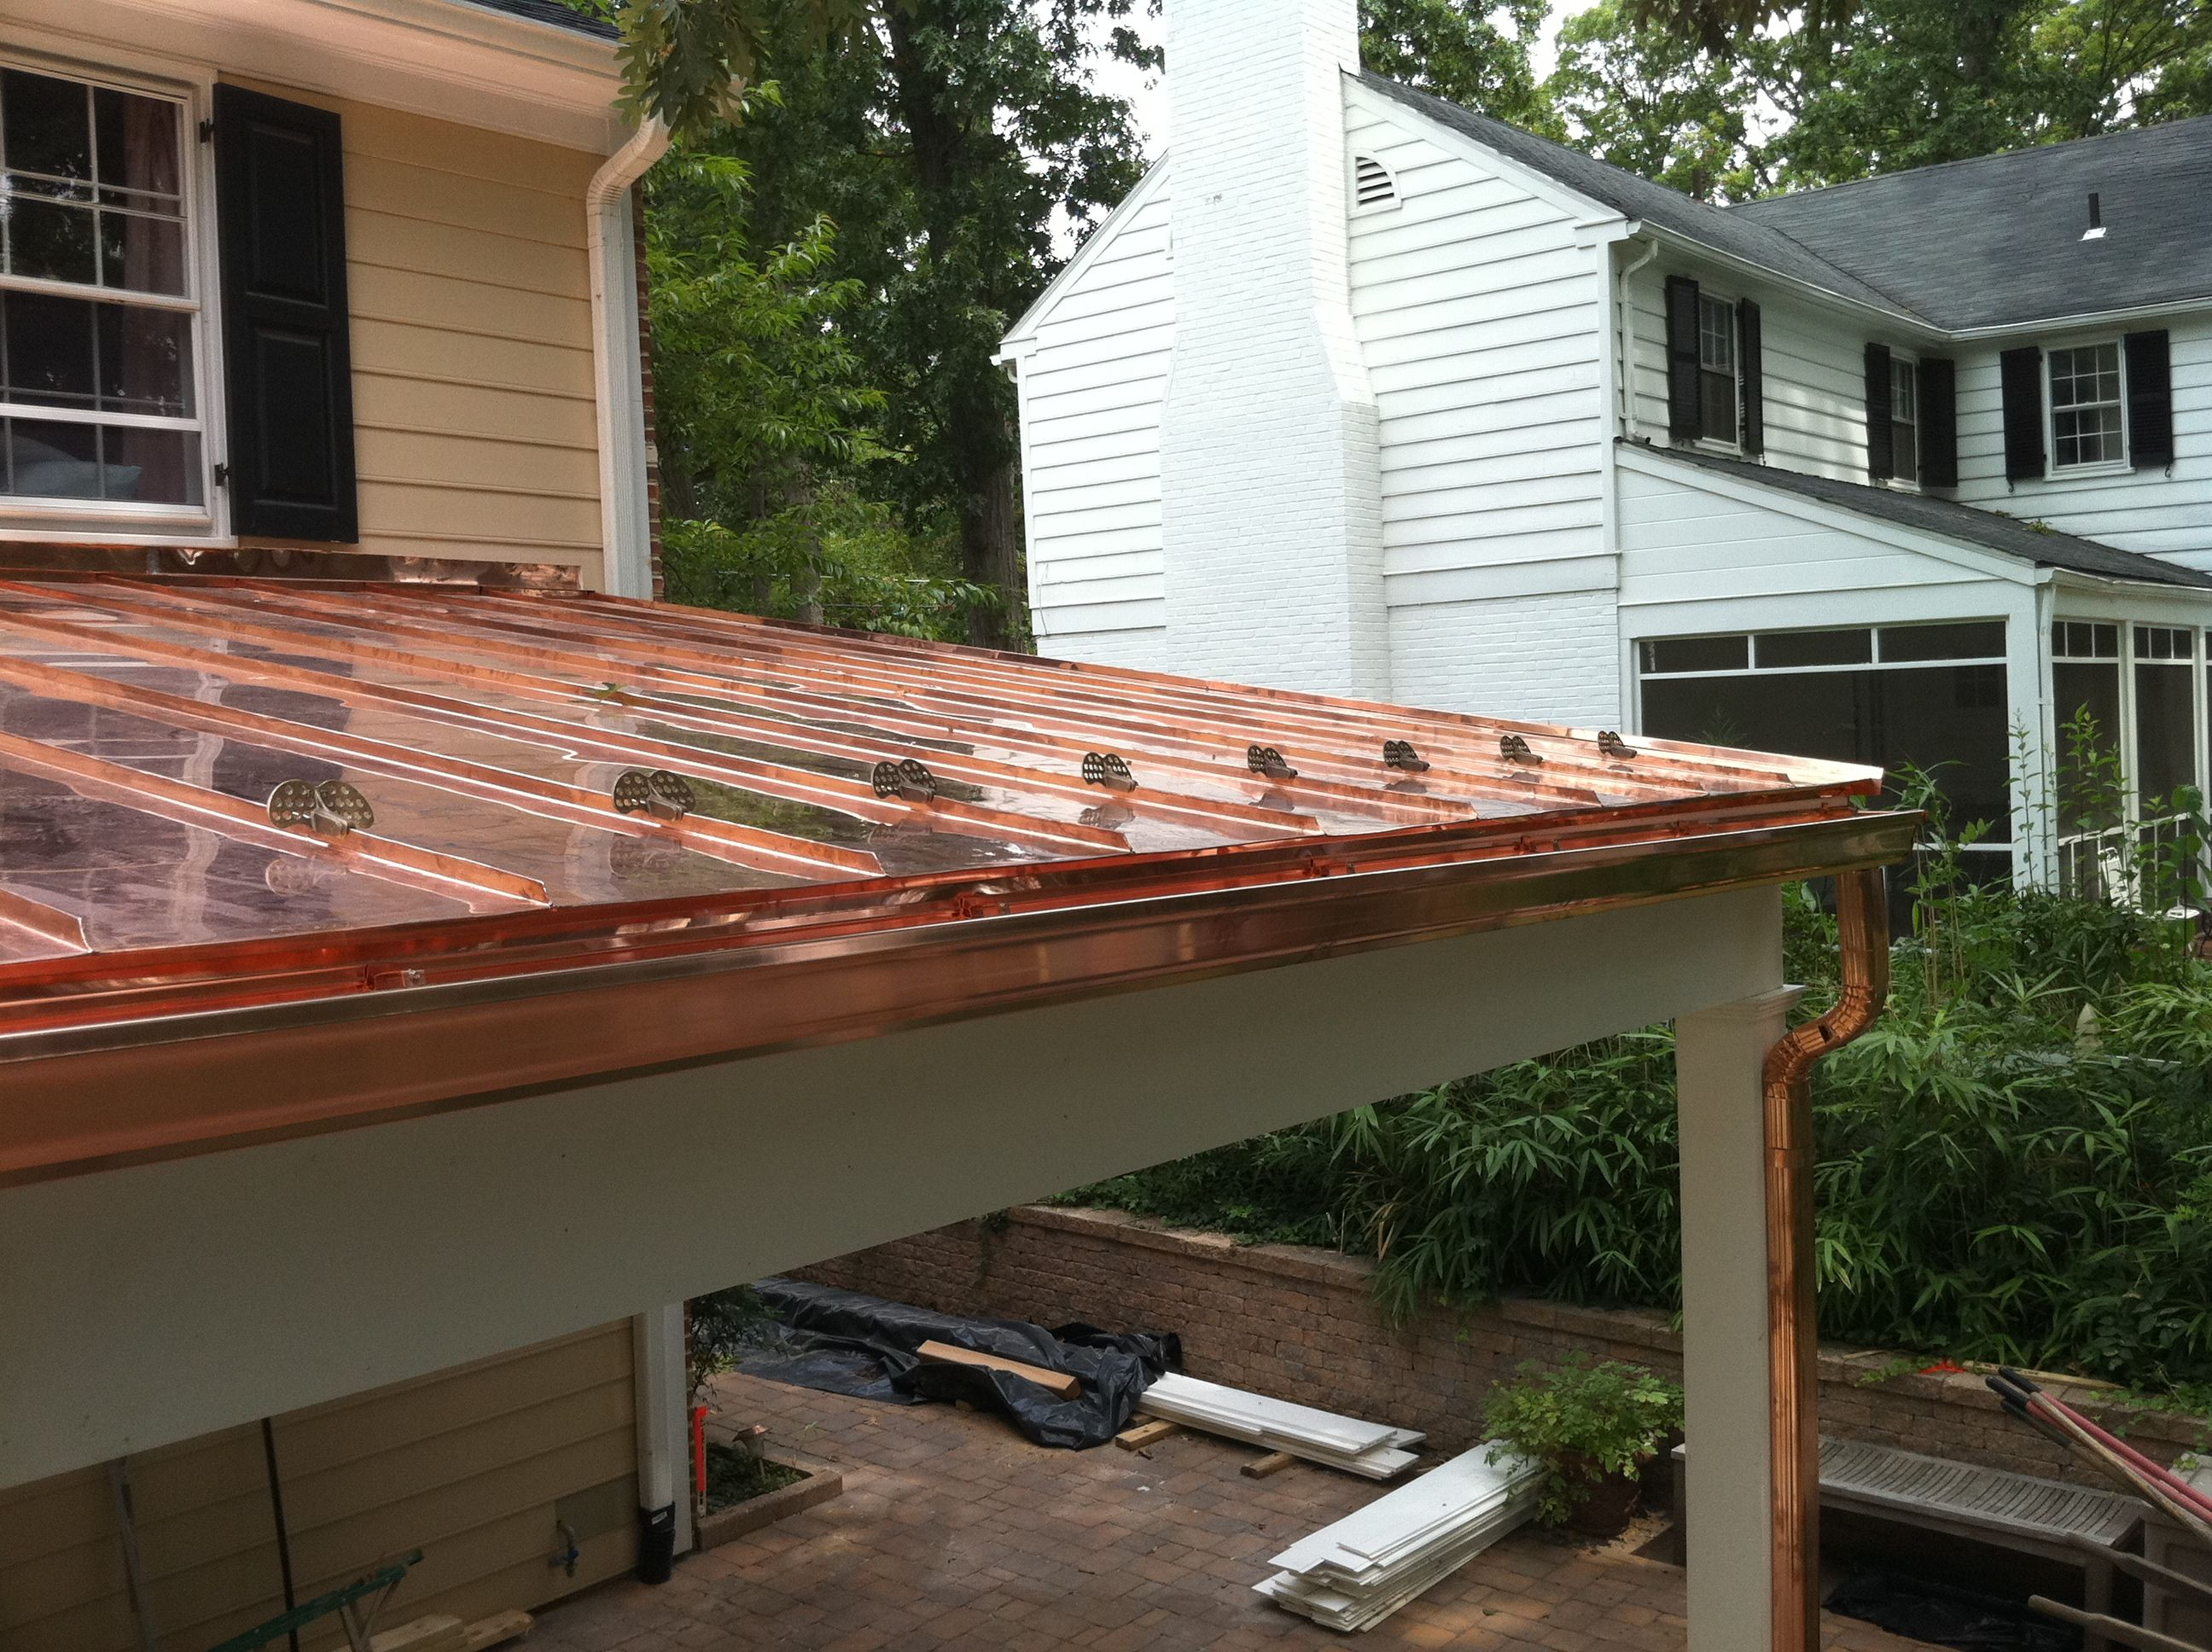 This Has Gutter But The Design Is Just Like The House Standing Seam Copper Roof Alexandria Va Copper Roof Copper Roof Porch Standing Seam